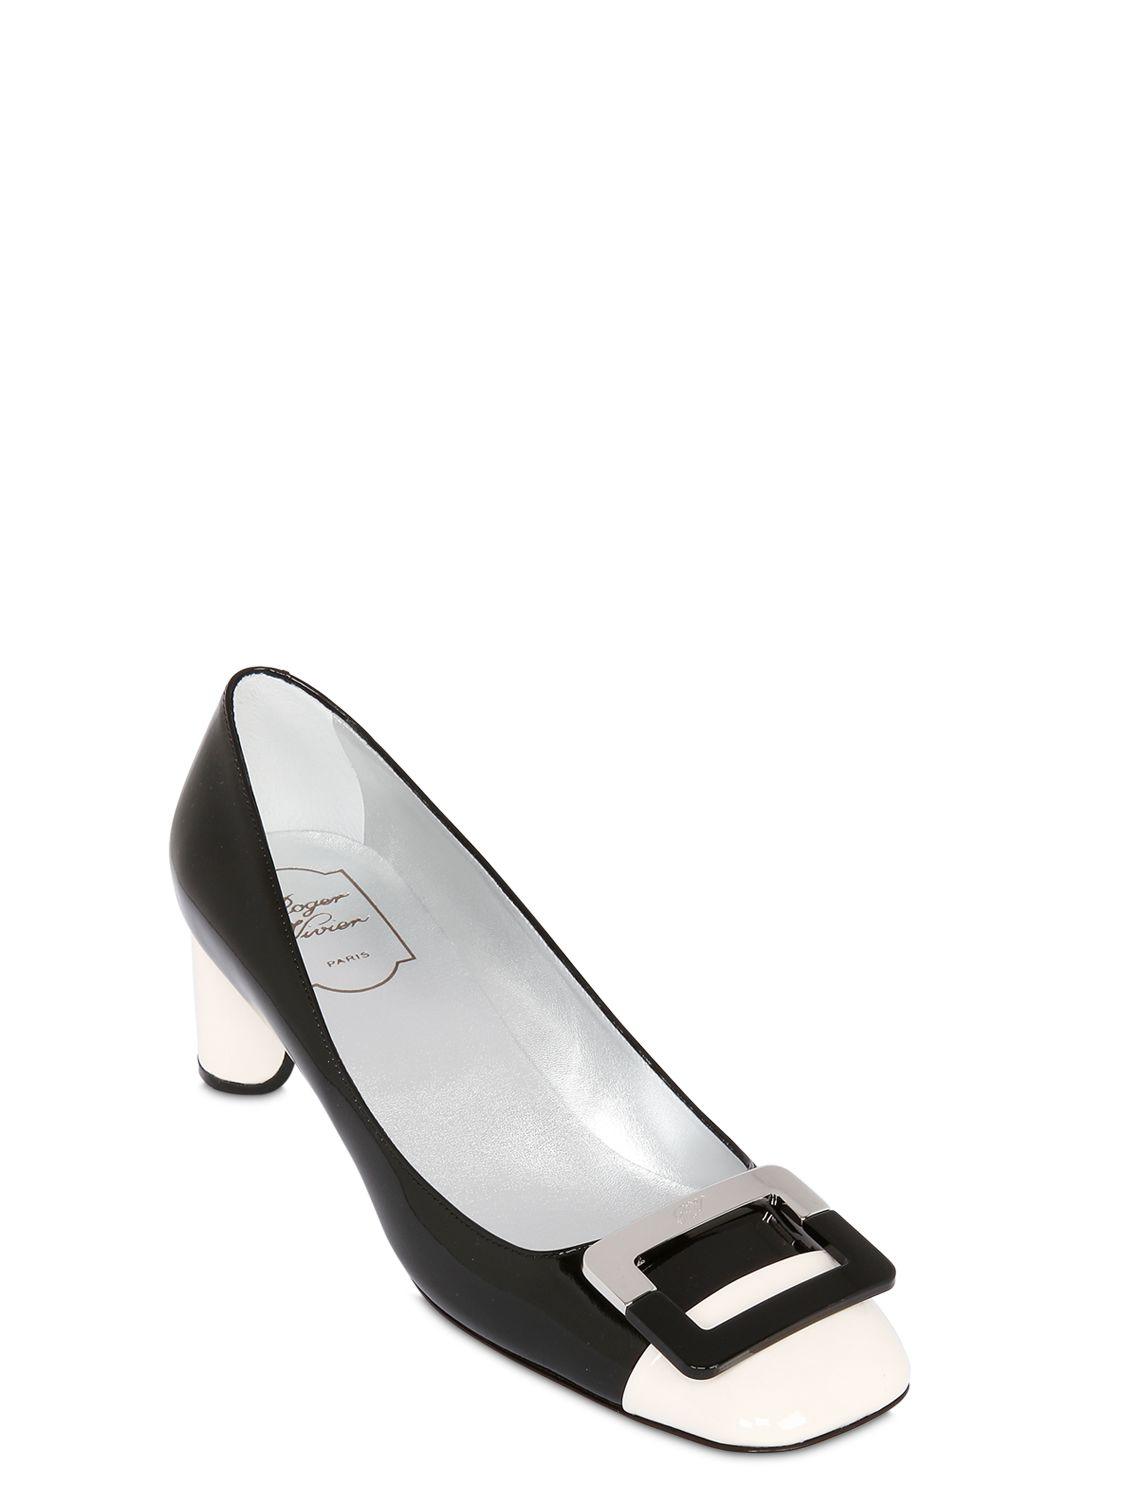 bebc9fd0e1 Roger Vivier 45Mm U Cut Patent Leather Pumps in Black - Lyst